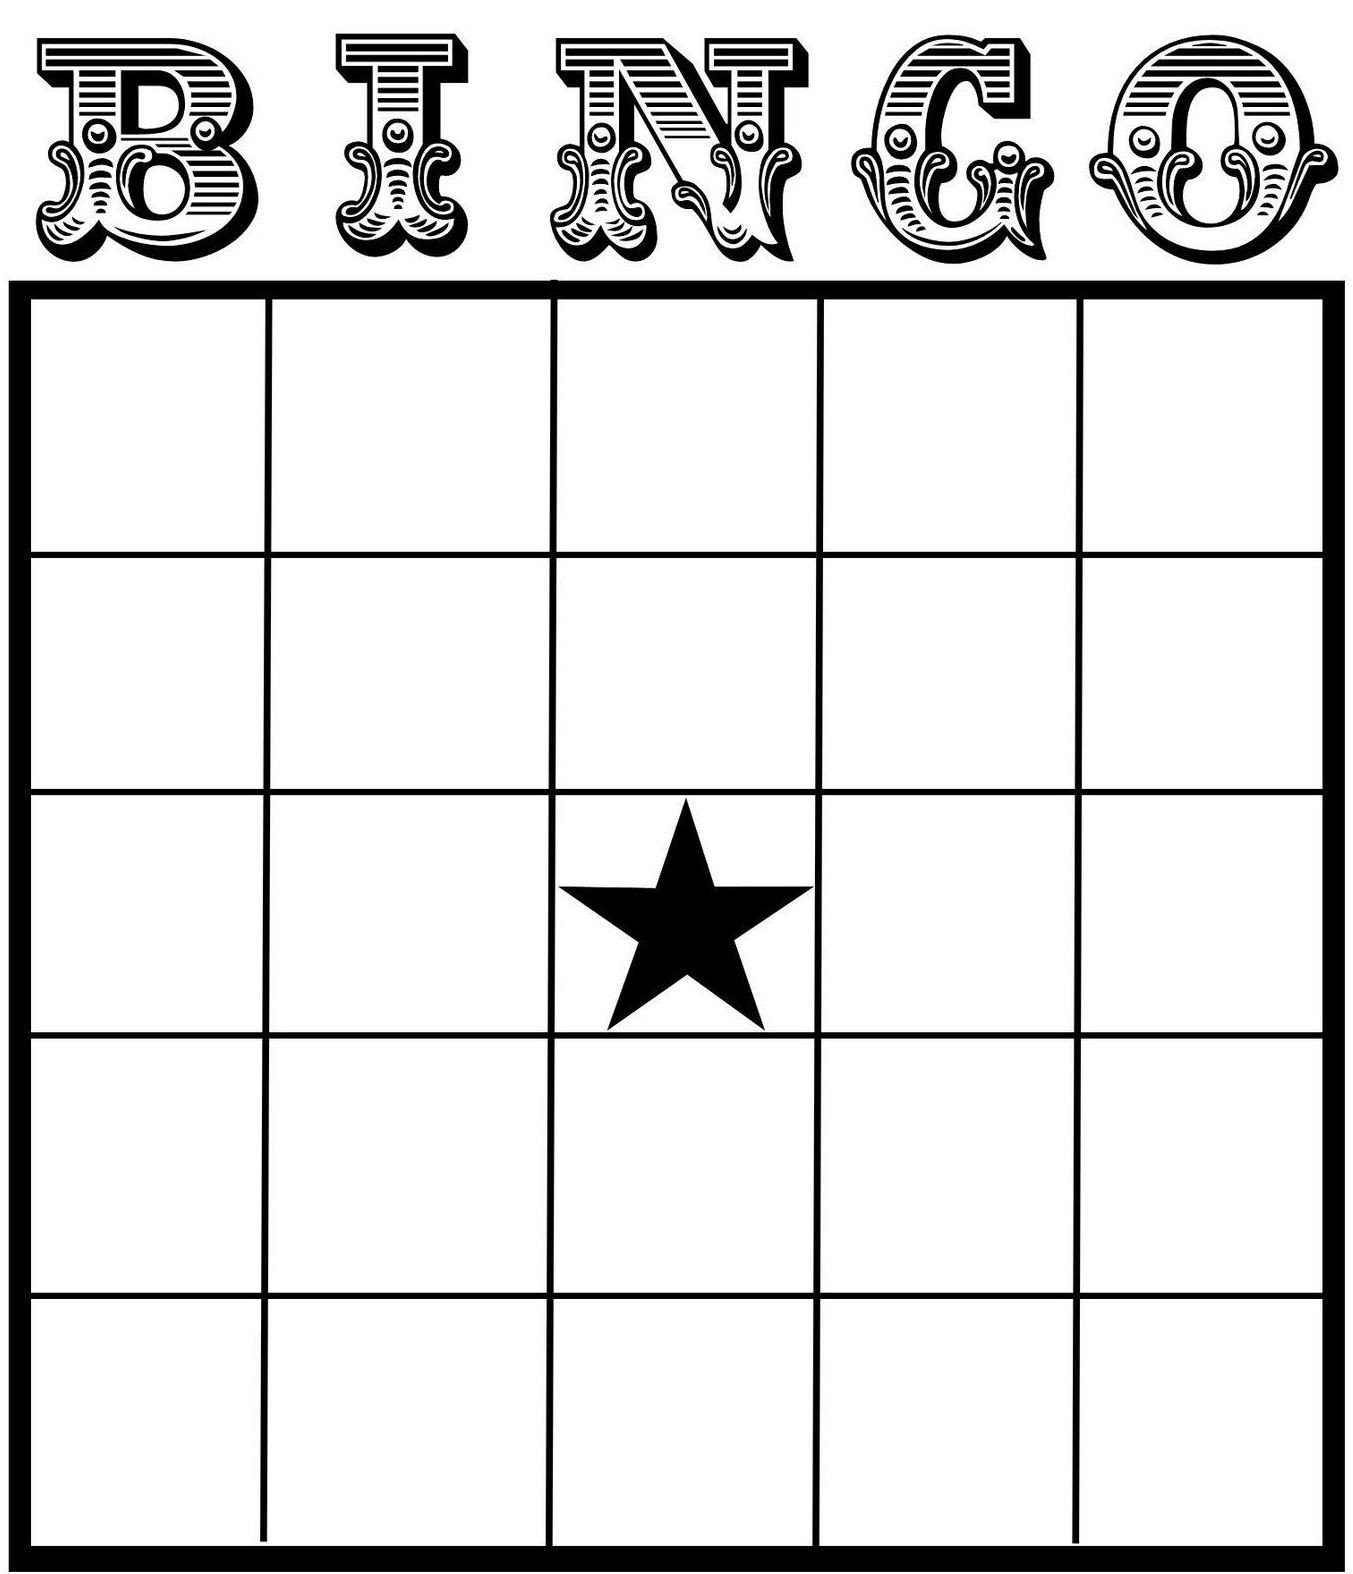 Blank Bingo Card Template Free Printable Bingo Card Template Set Your Plan & Tasks